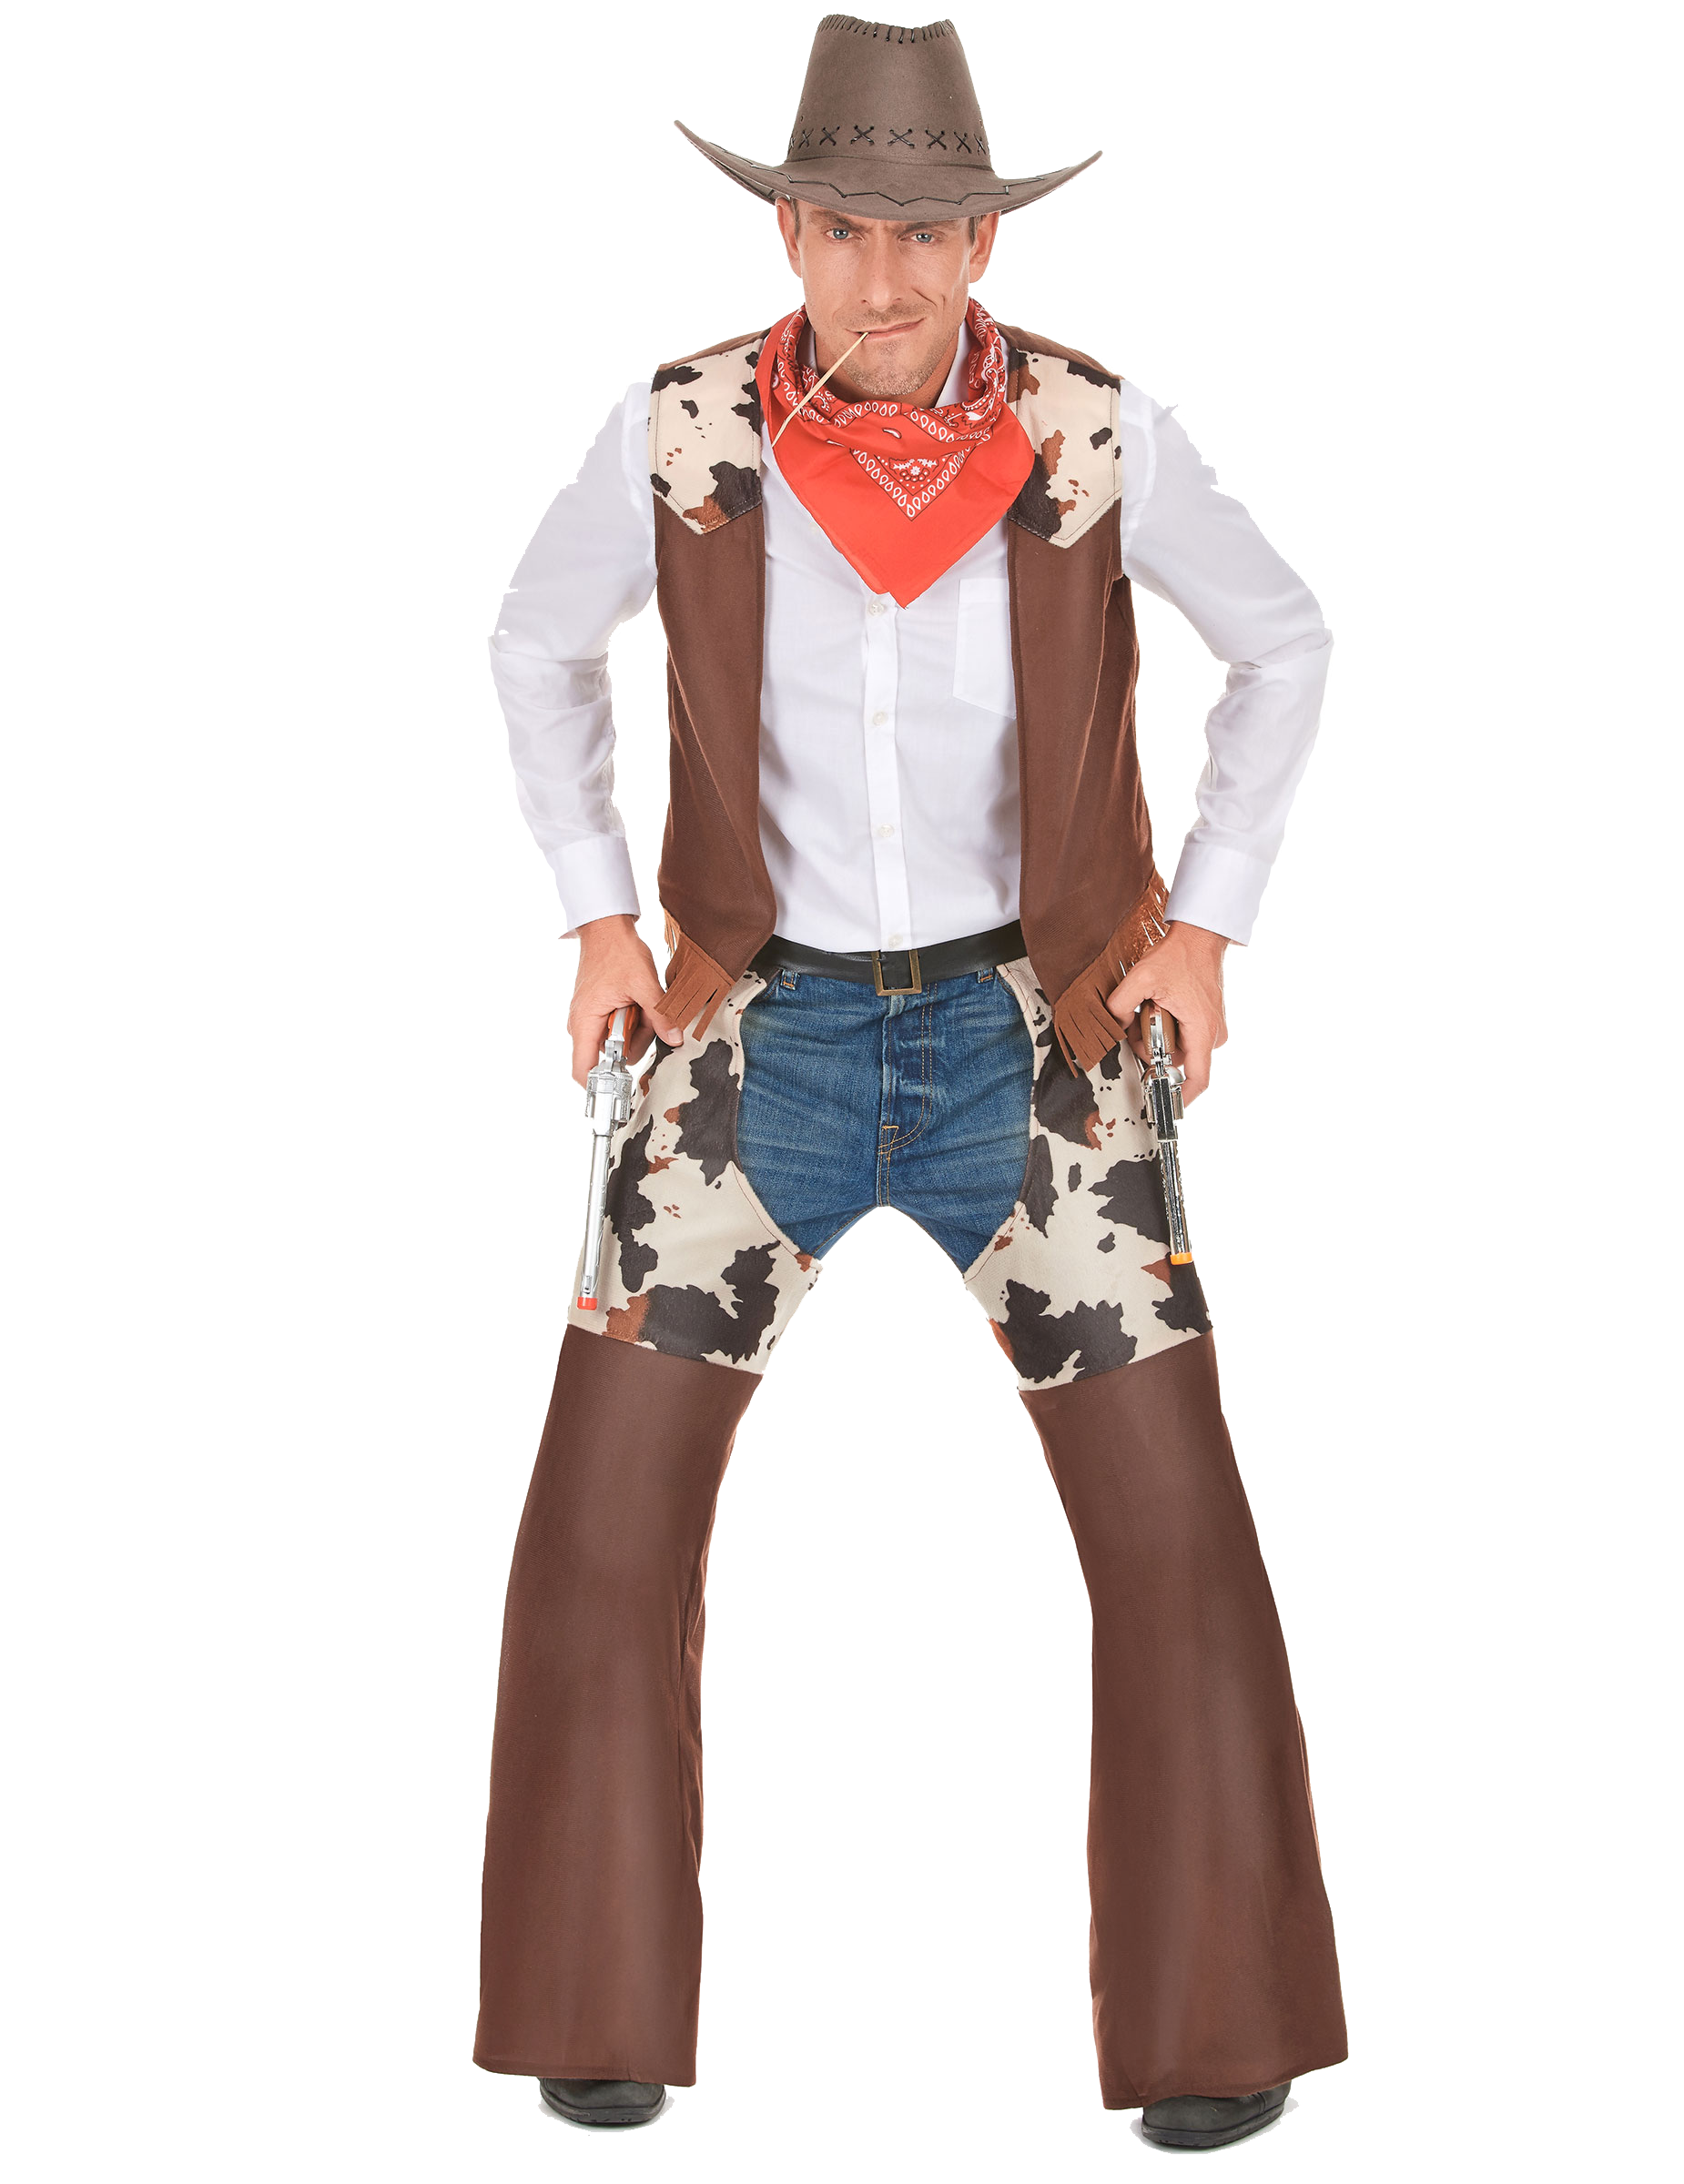 Cowboy PNG Background Clipart.